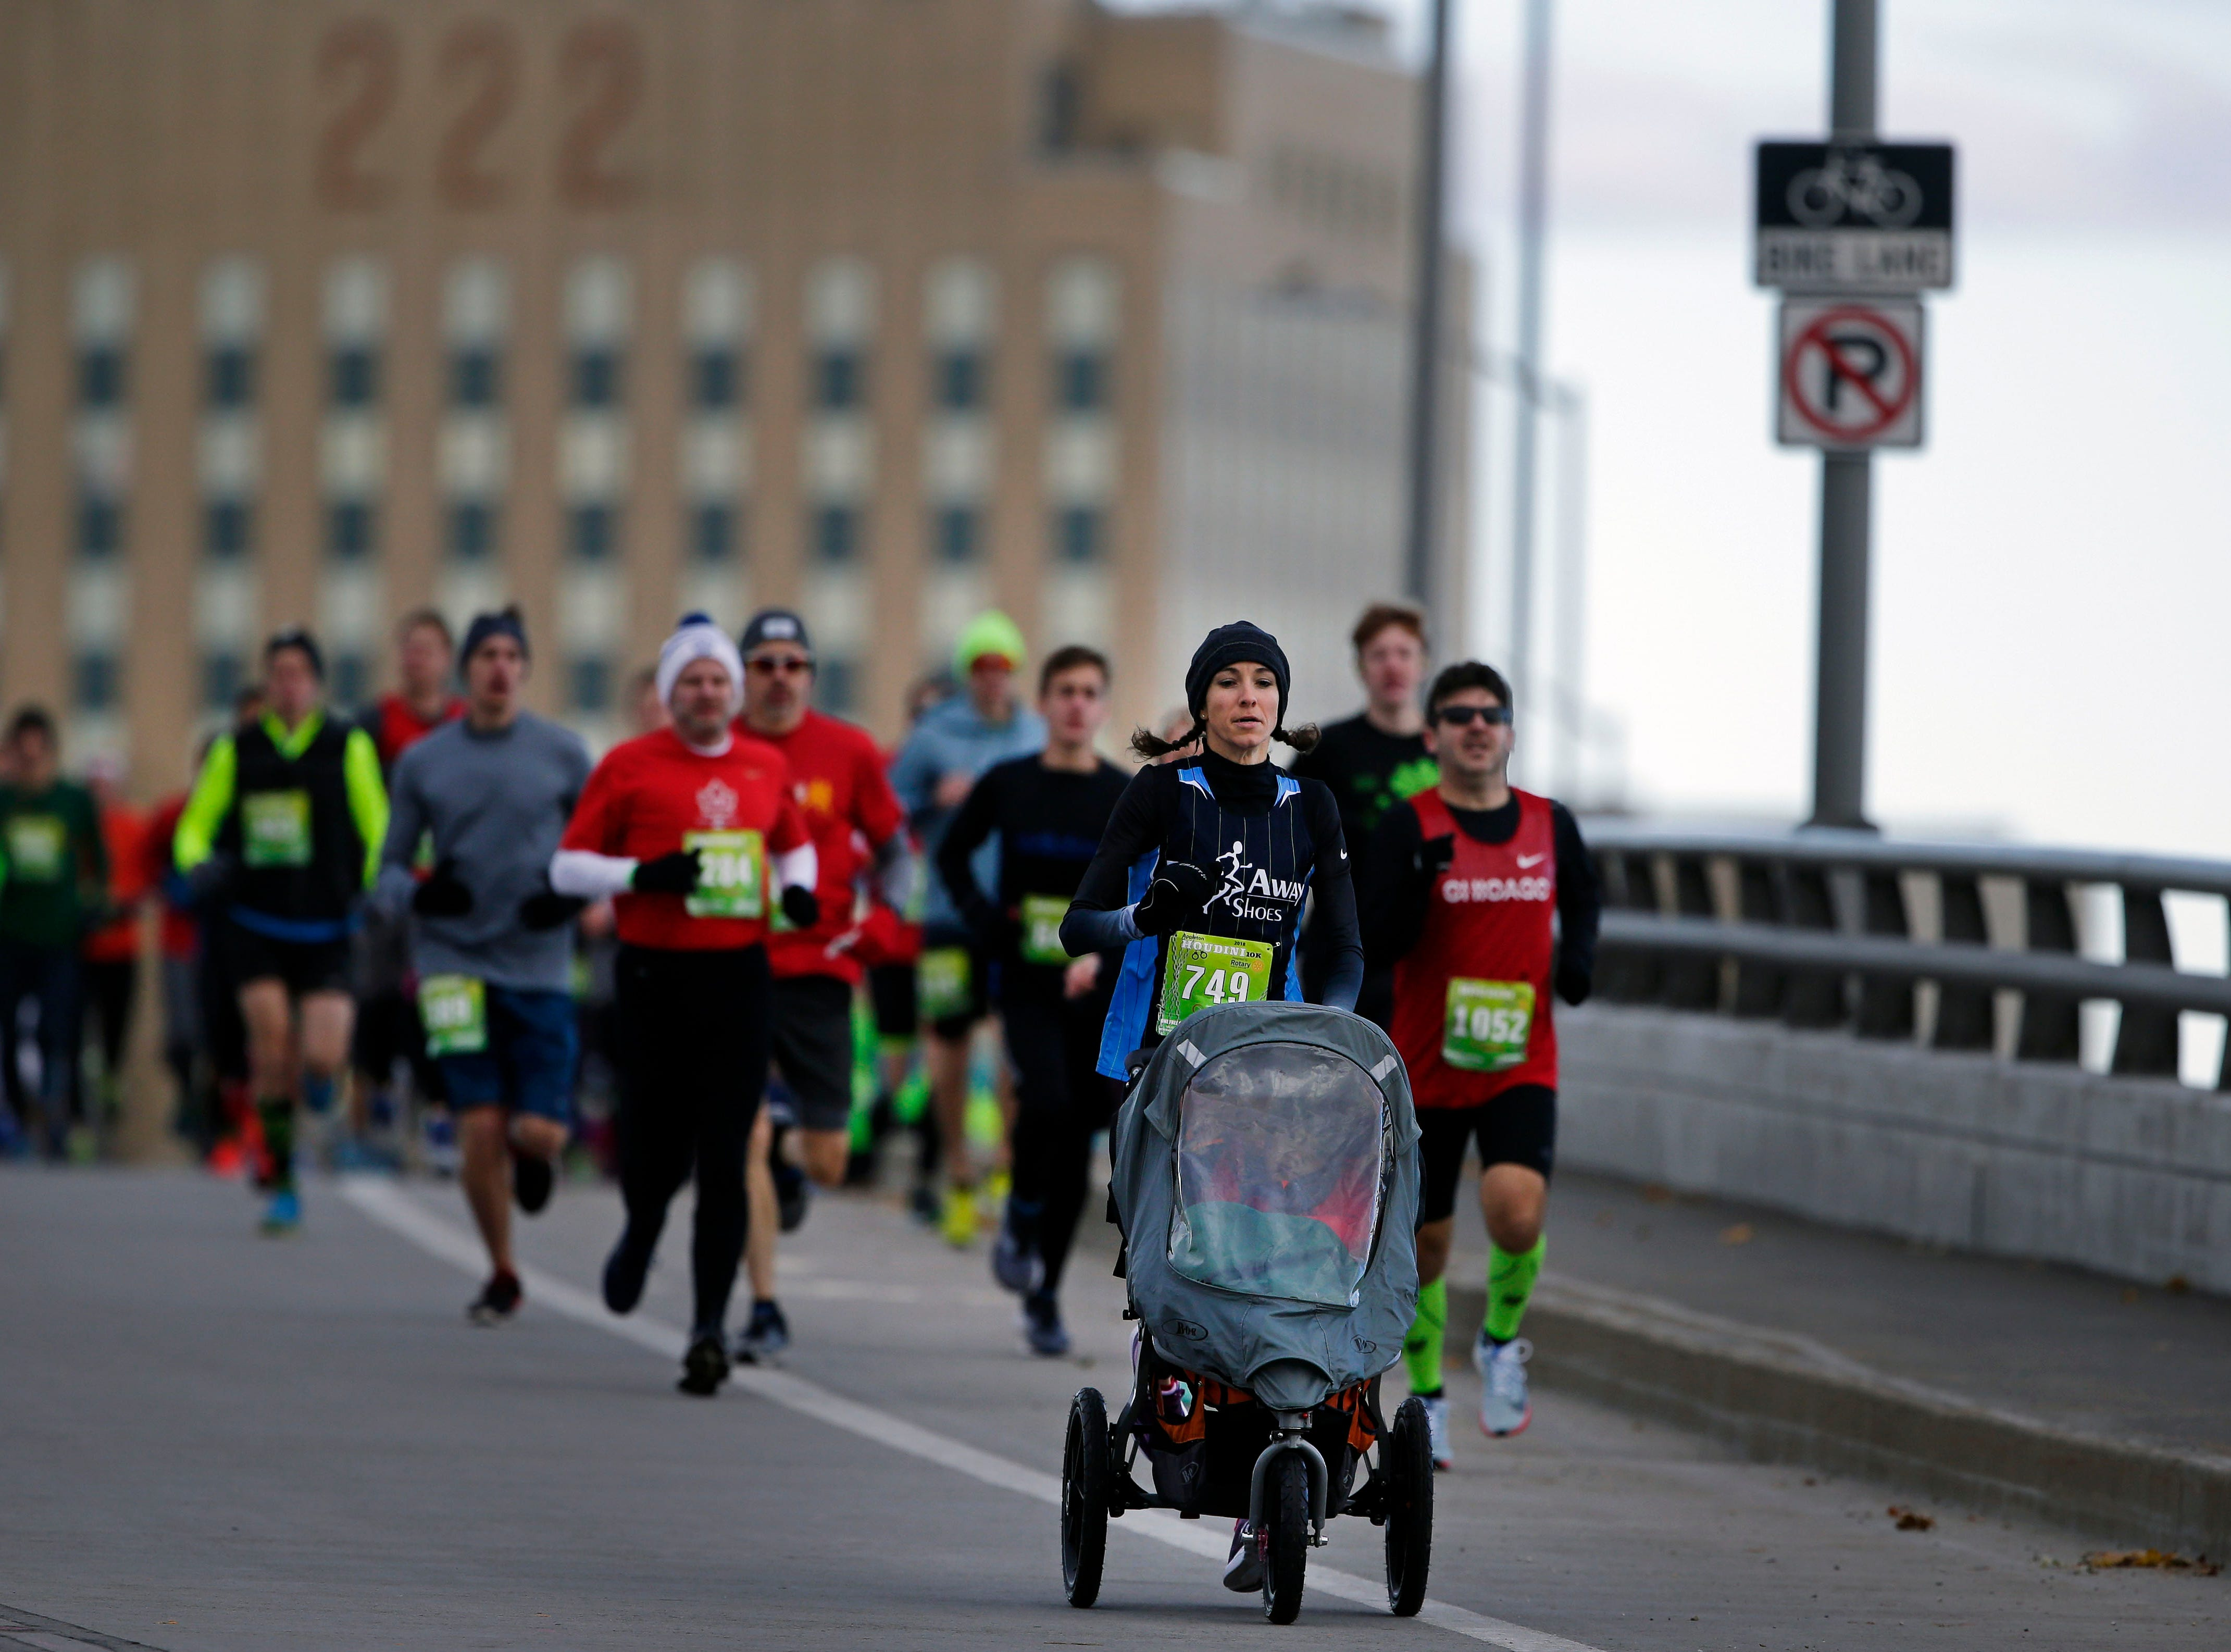 Laura Schmitz tackles the run with an addition as runners cross the Oneida Street bridge during the 4th annual Appleton Houdini 10K Saturday, November 3, 2018, in Appleton, Wis.Ron Page/USA TODAY NETWORK-Wisconsin